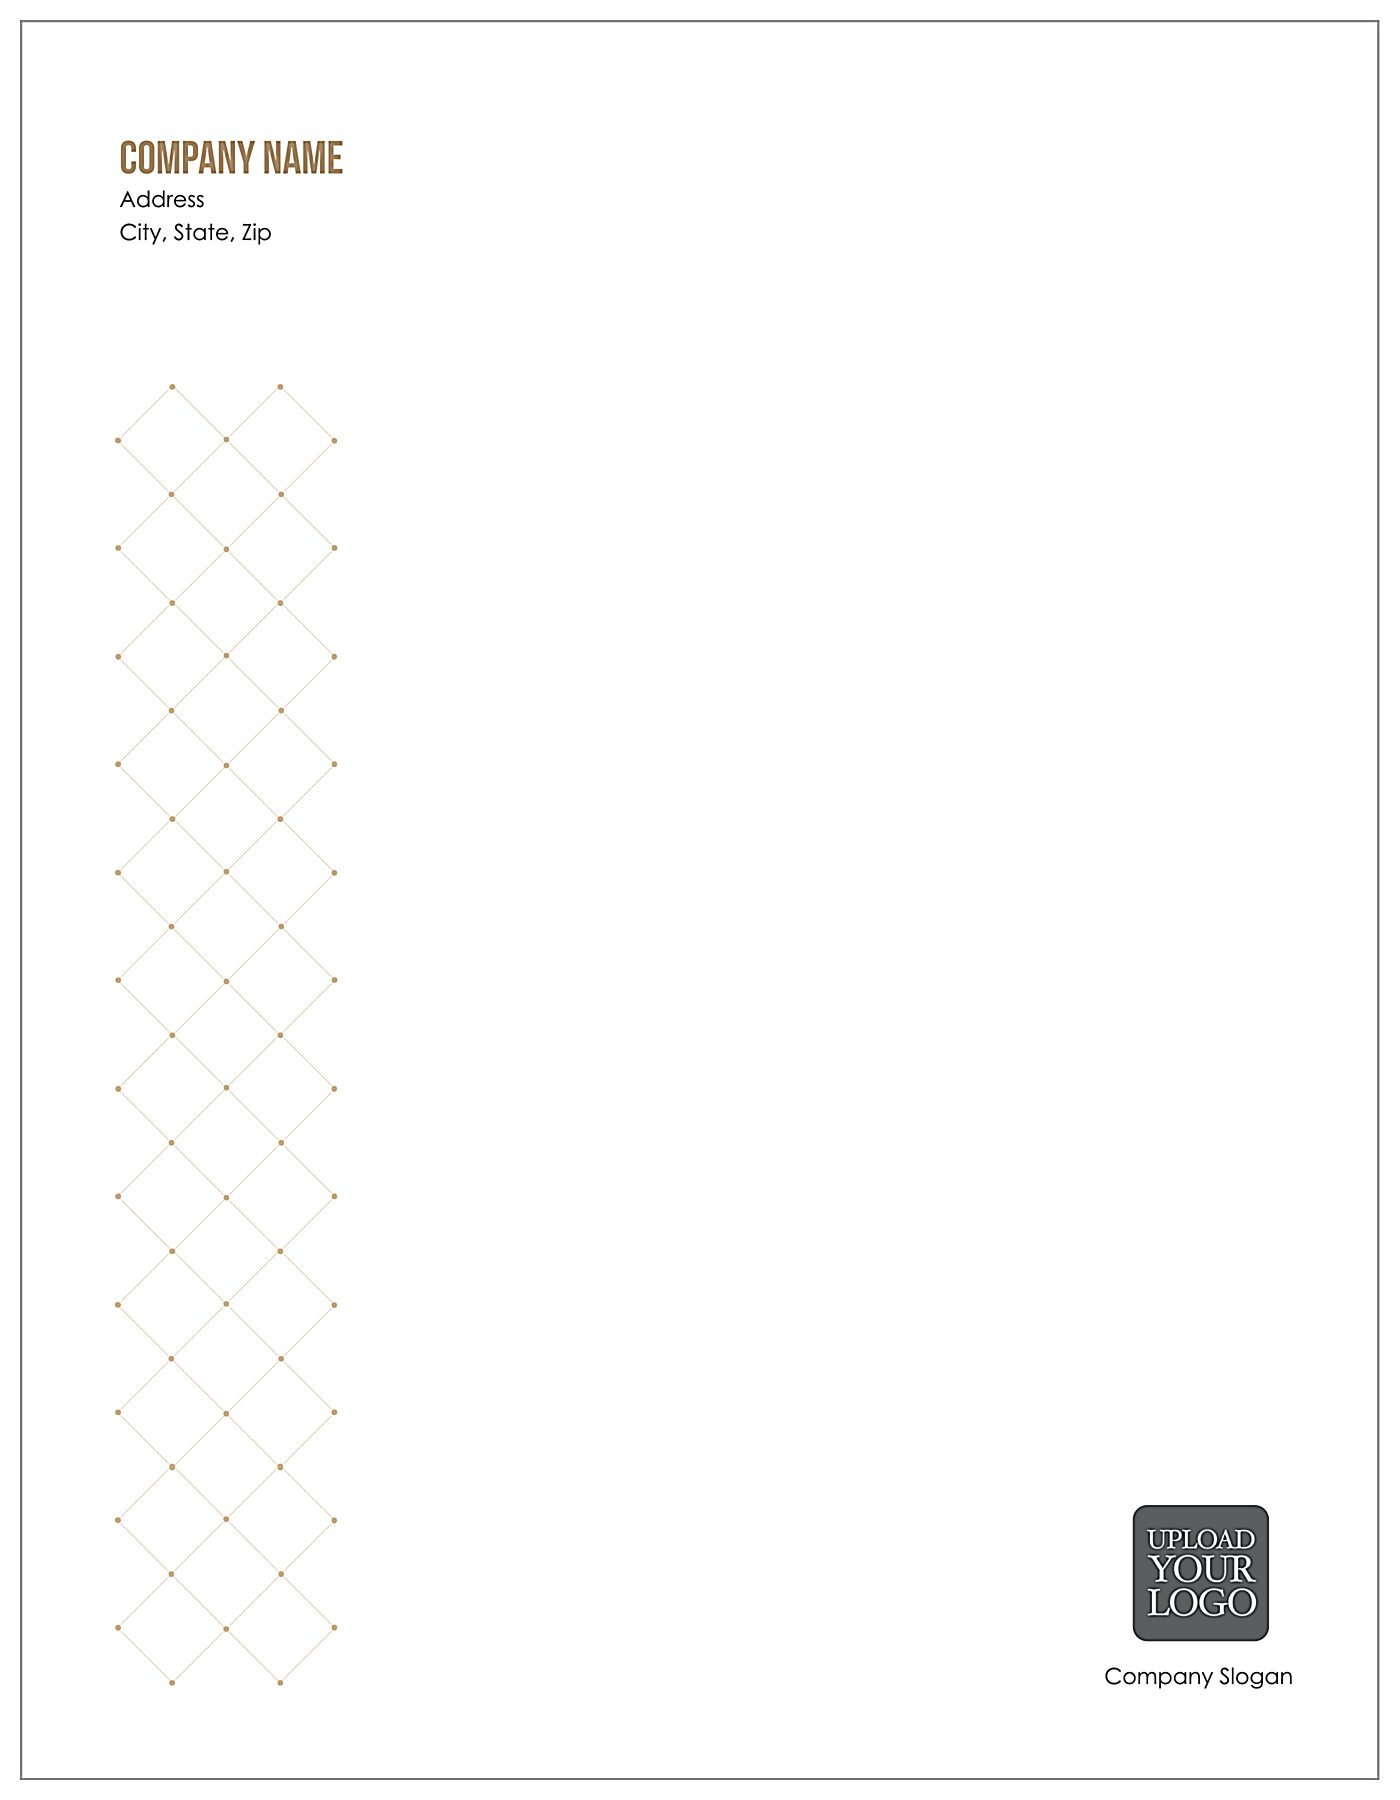 Connected Dots front - Letterhead Maker